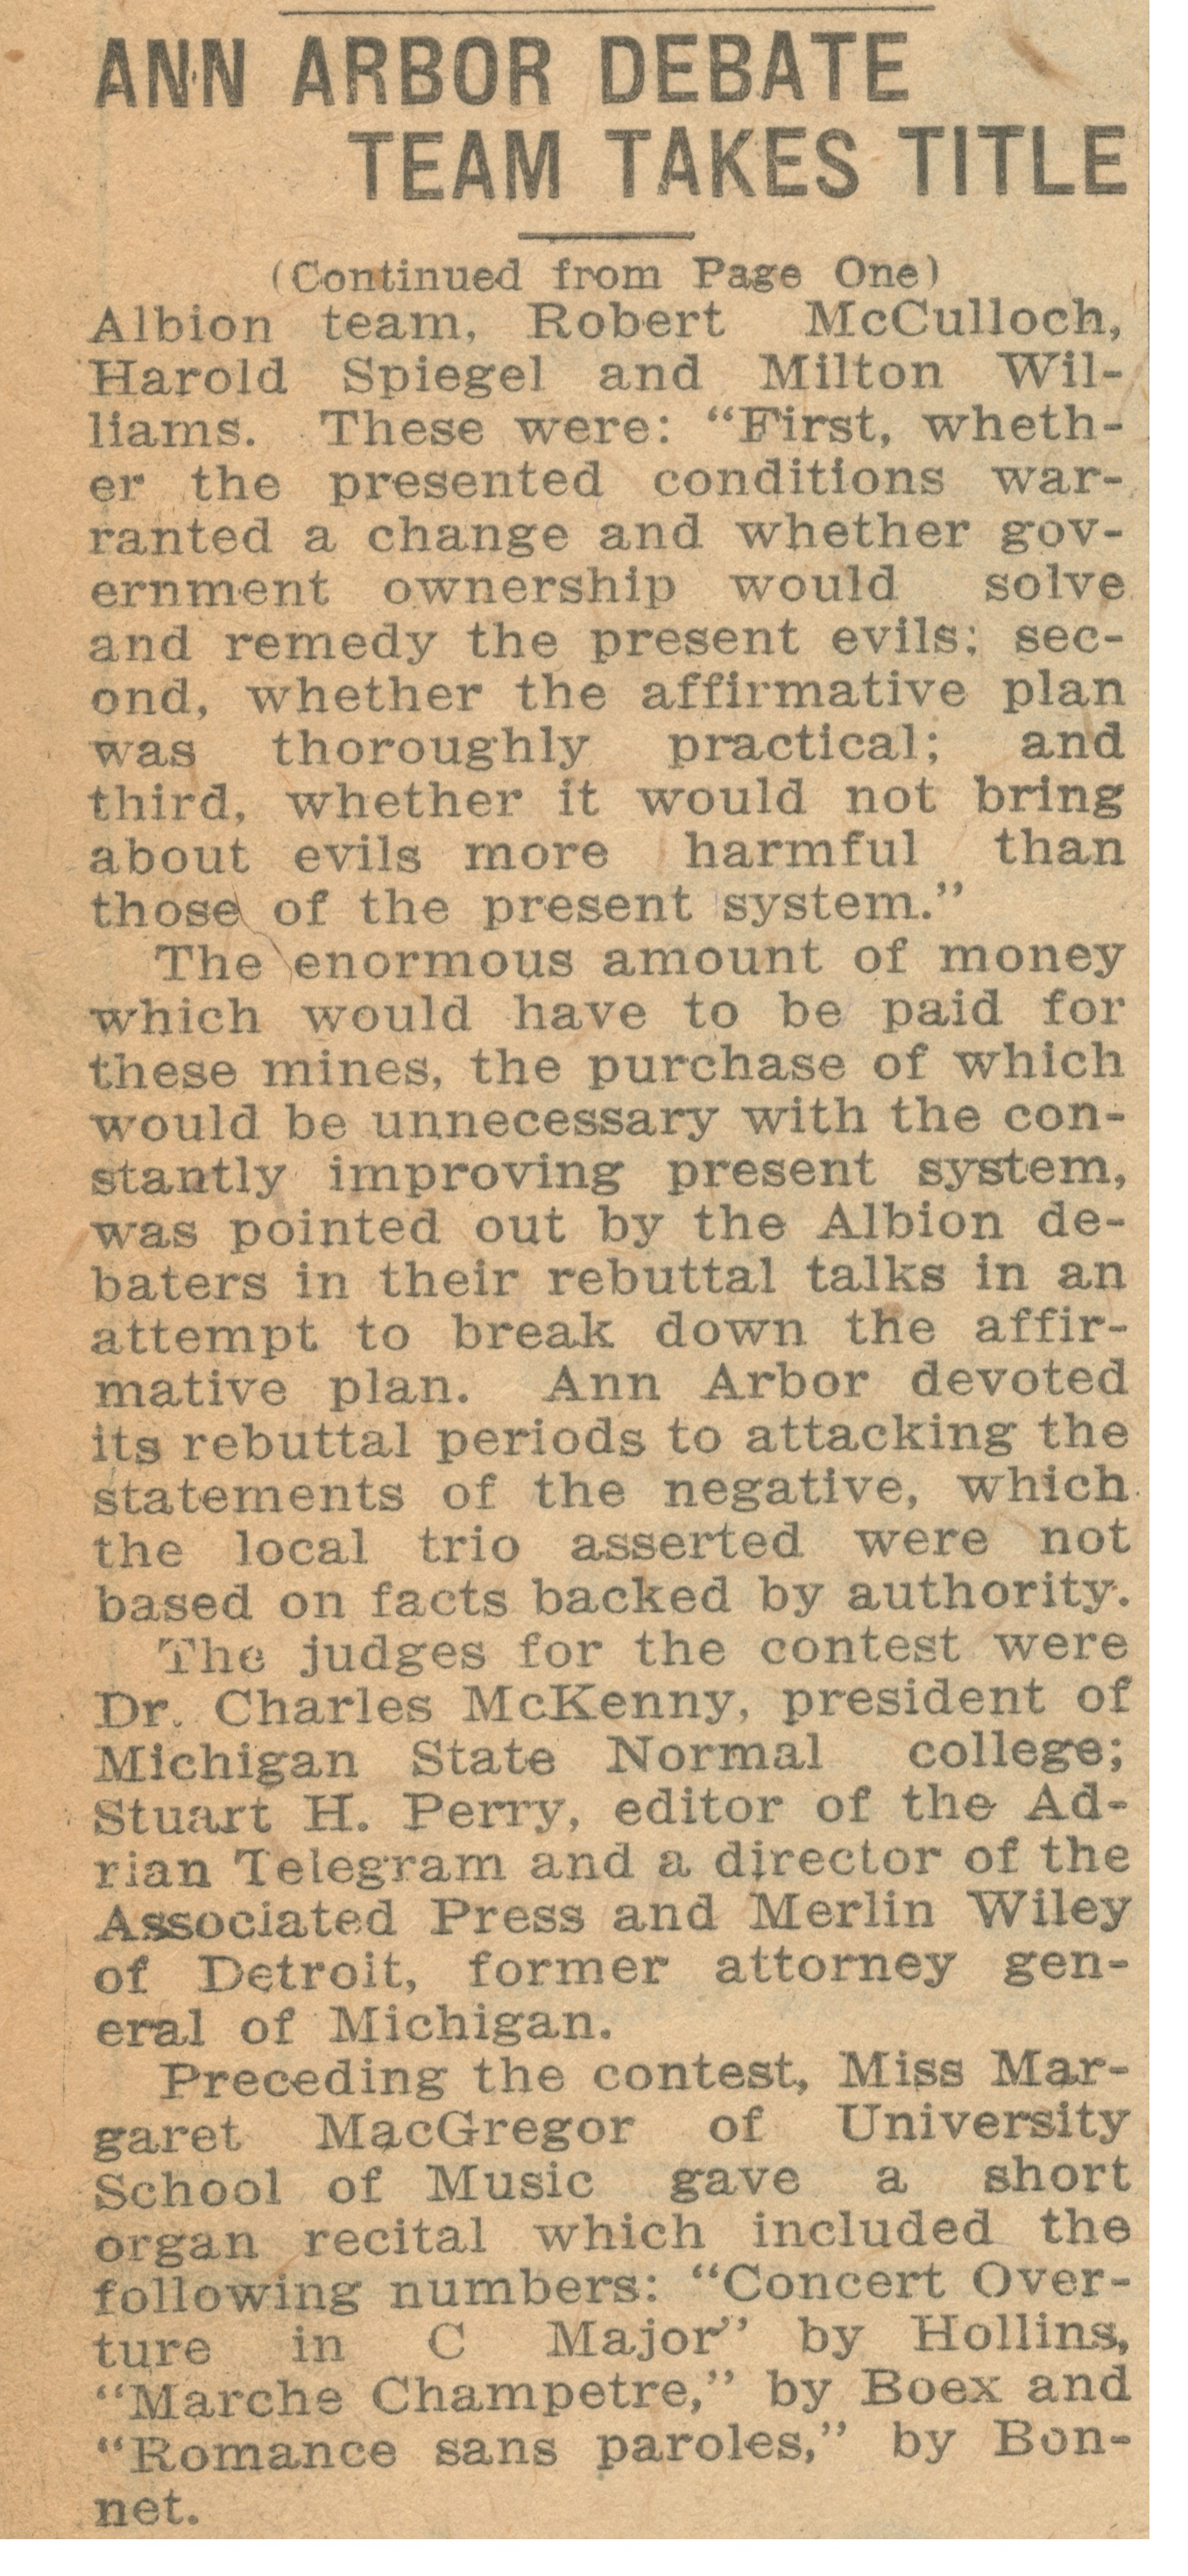 Ann Arbor Debate Team Takes Title In State Contest: Local High School Orators Given Unanimous Decision Over Albion Trio; Trophies And Watches Presented To Participants - May 12, 1927 image